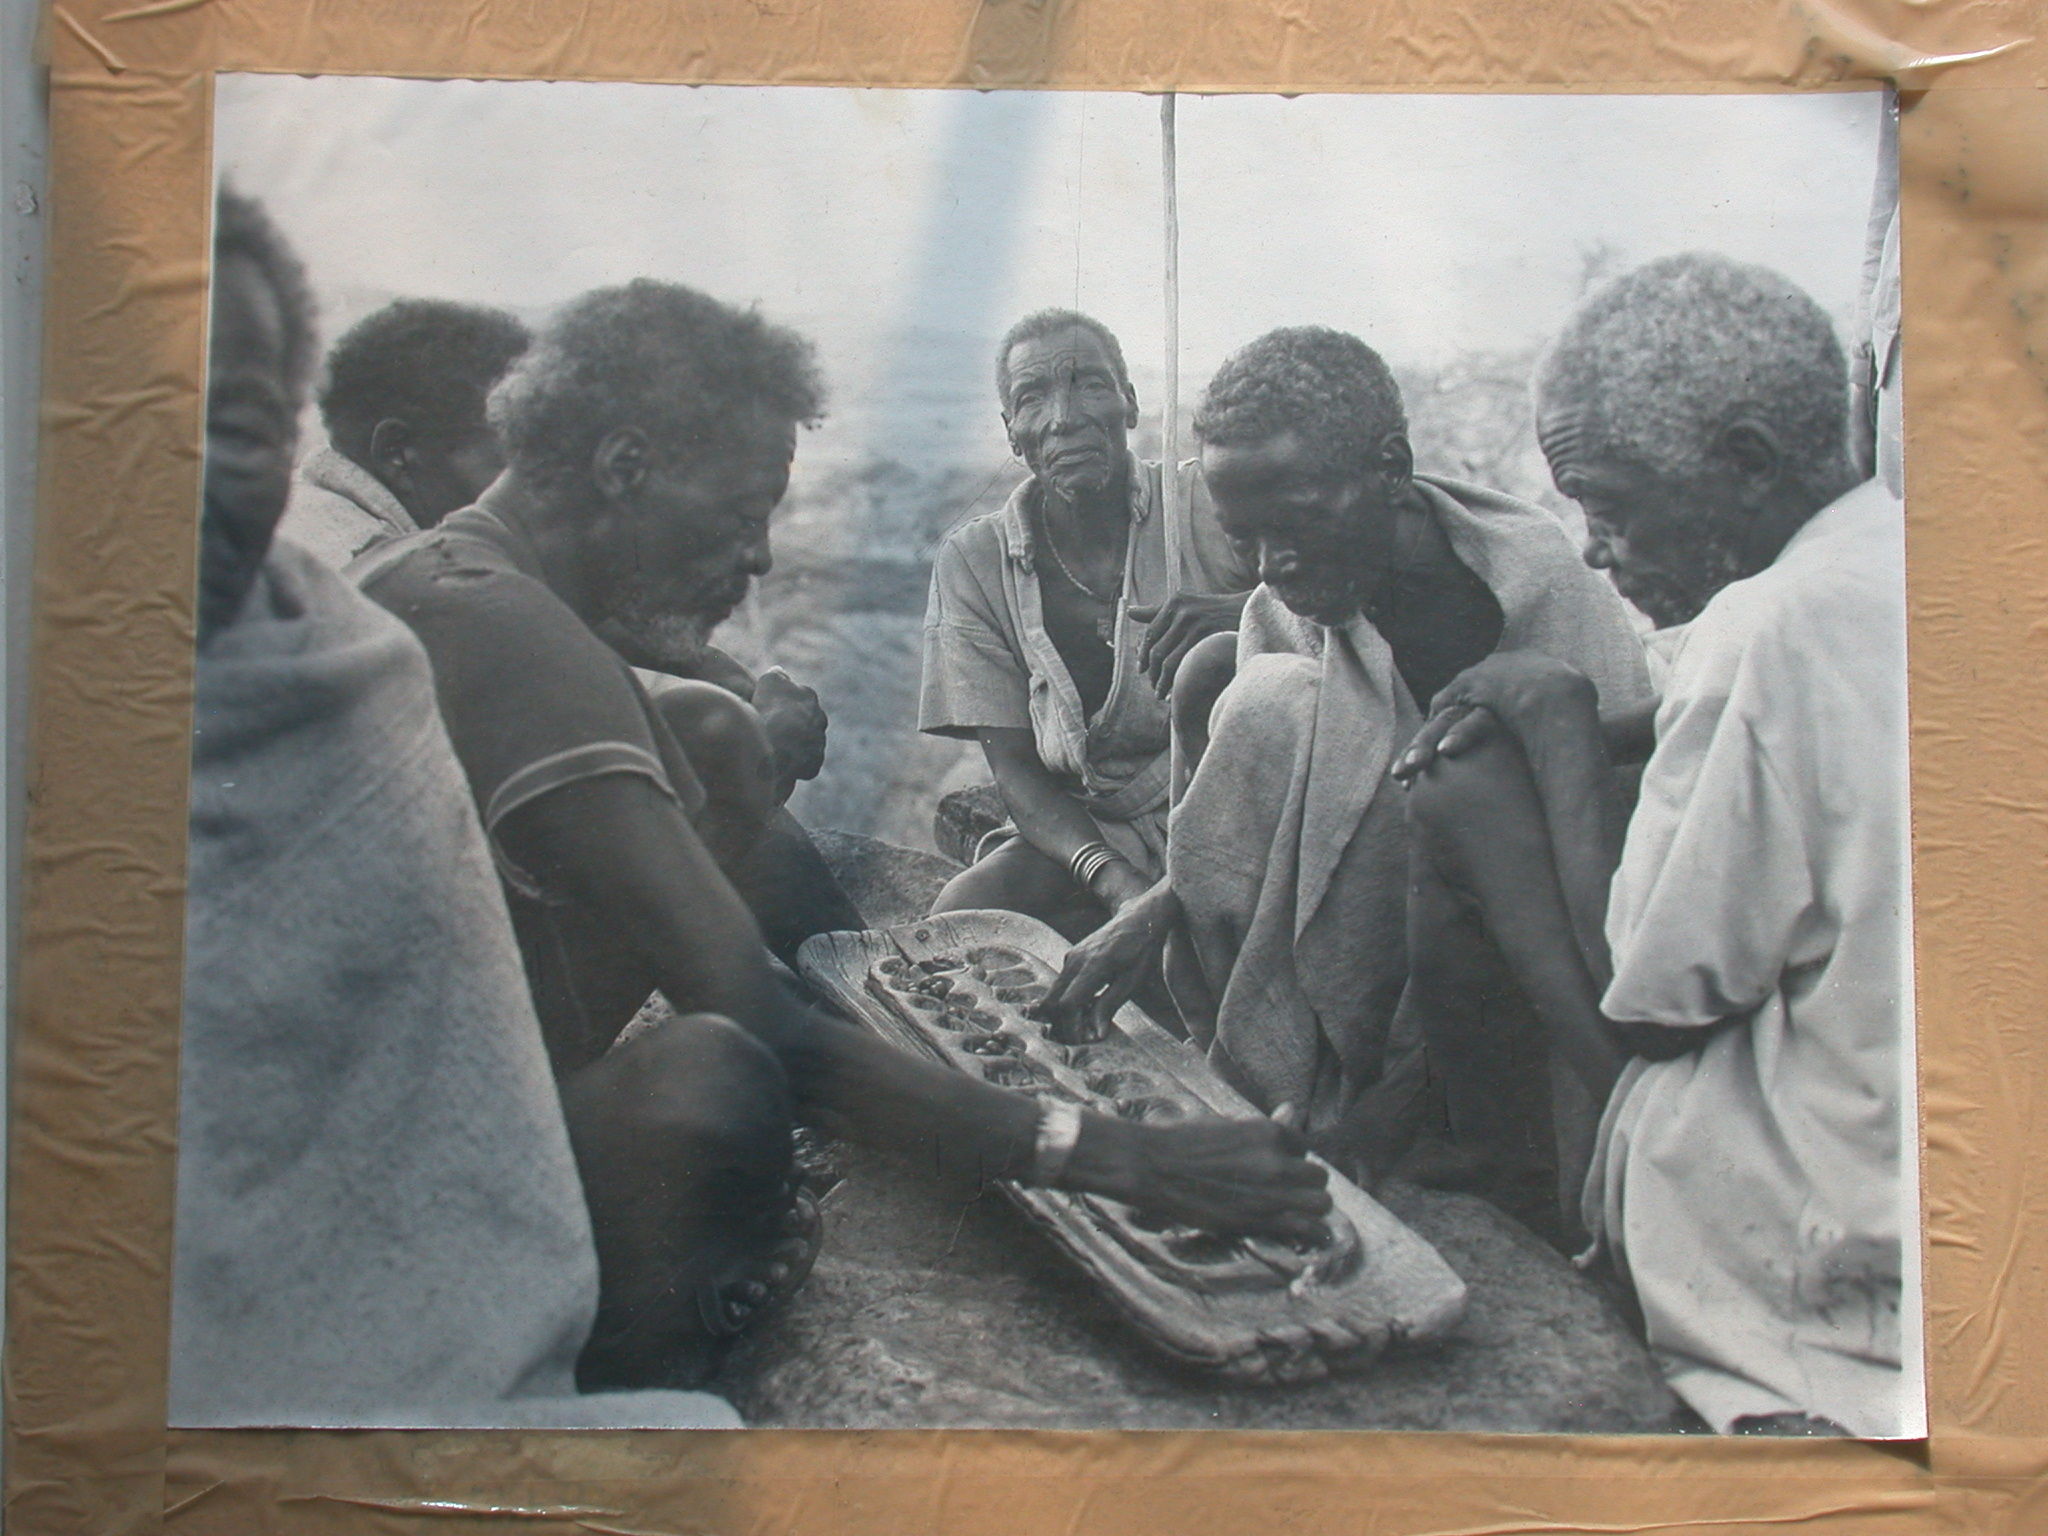 Photo of Ethiopians Playing Game, National Museum, Addis Ababa, Ethiopia